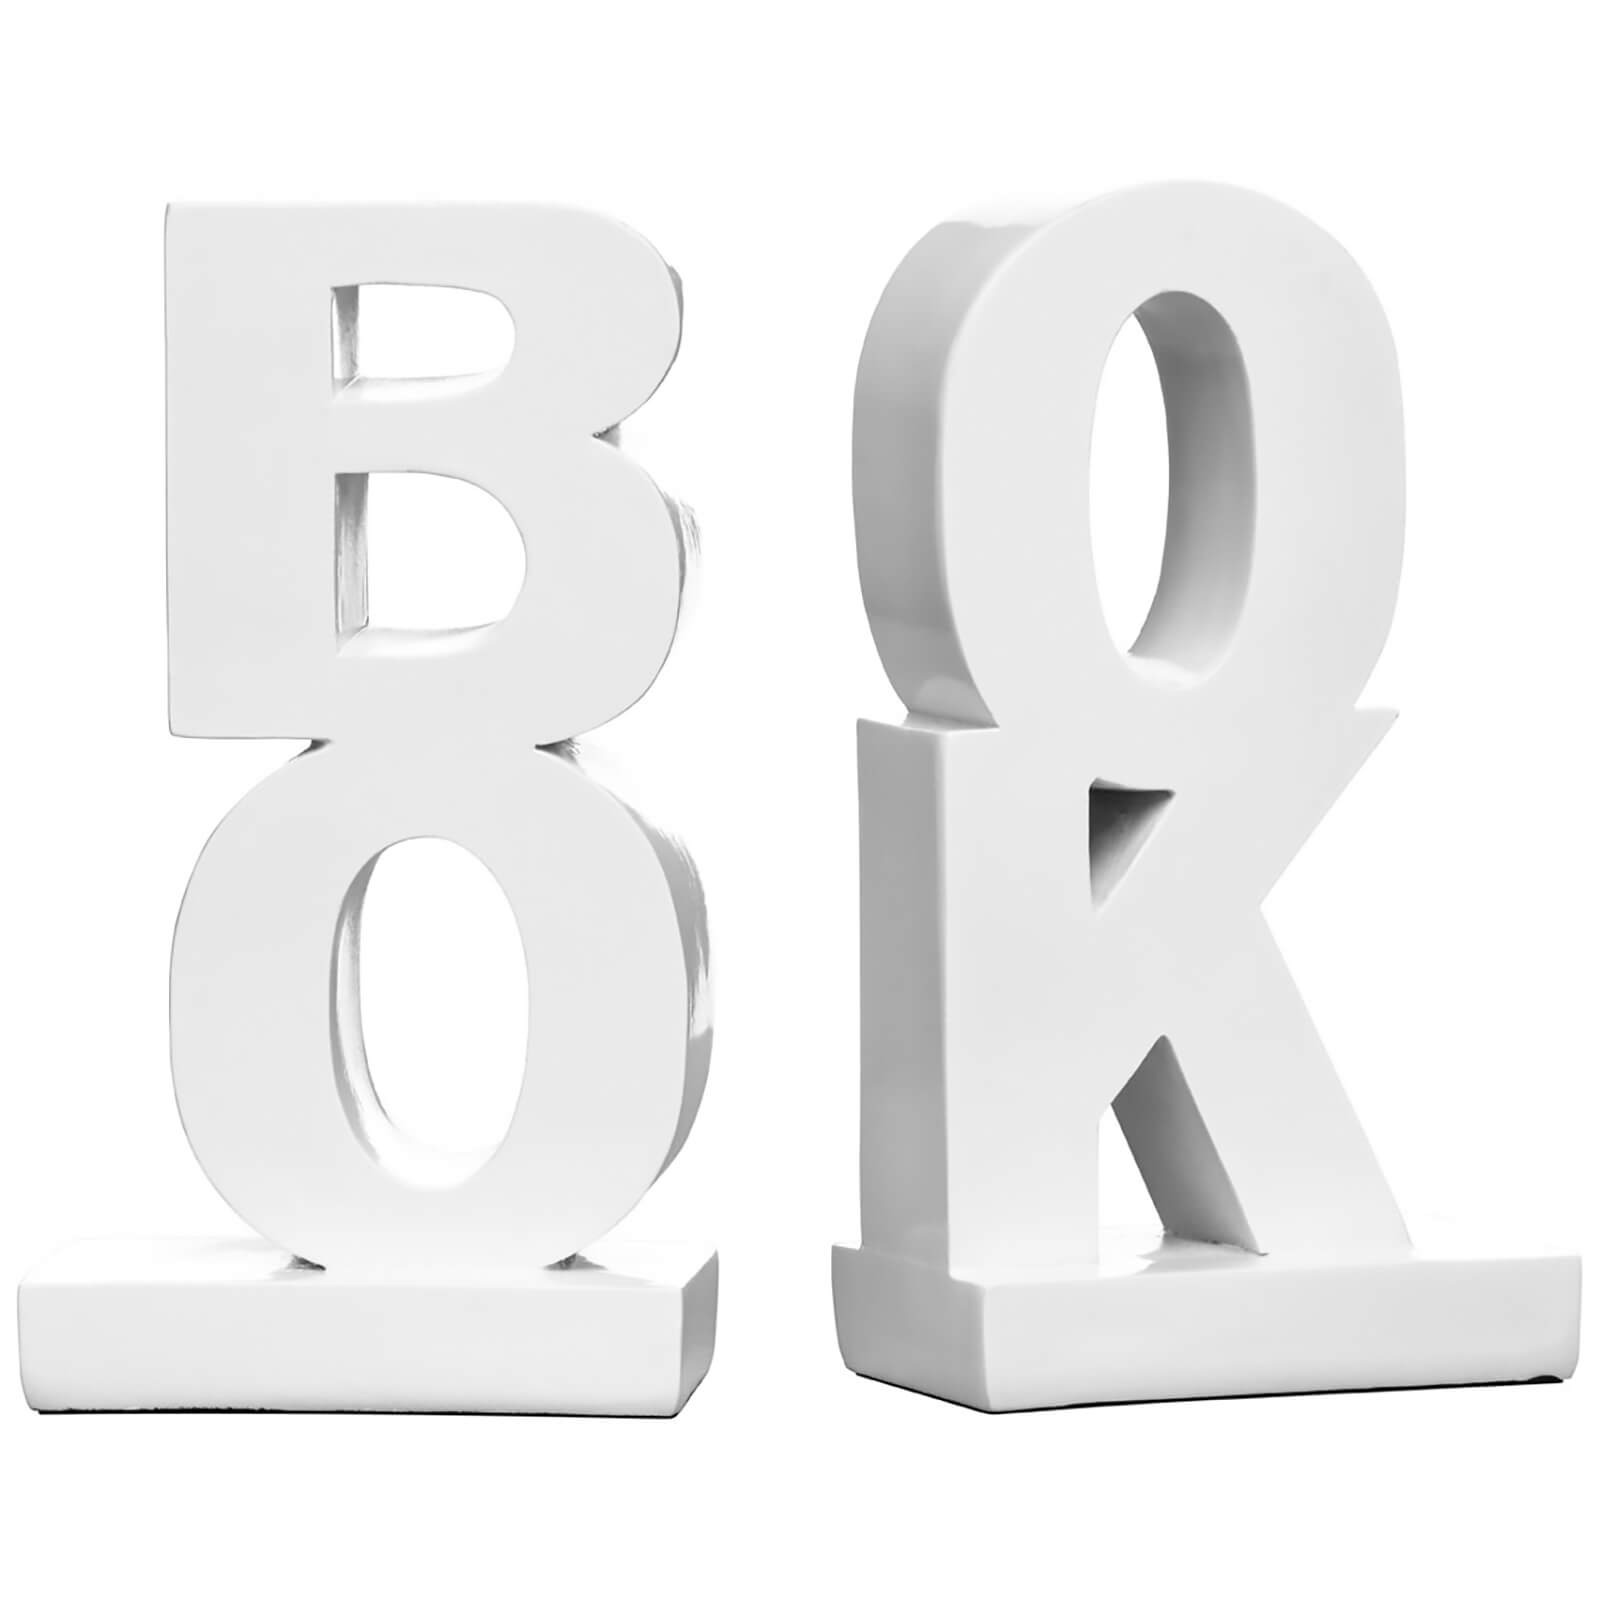 BOOK High Gloss Bookends (Set of 2) - White